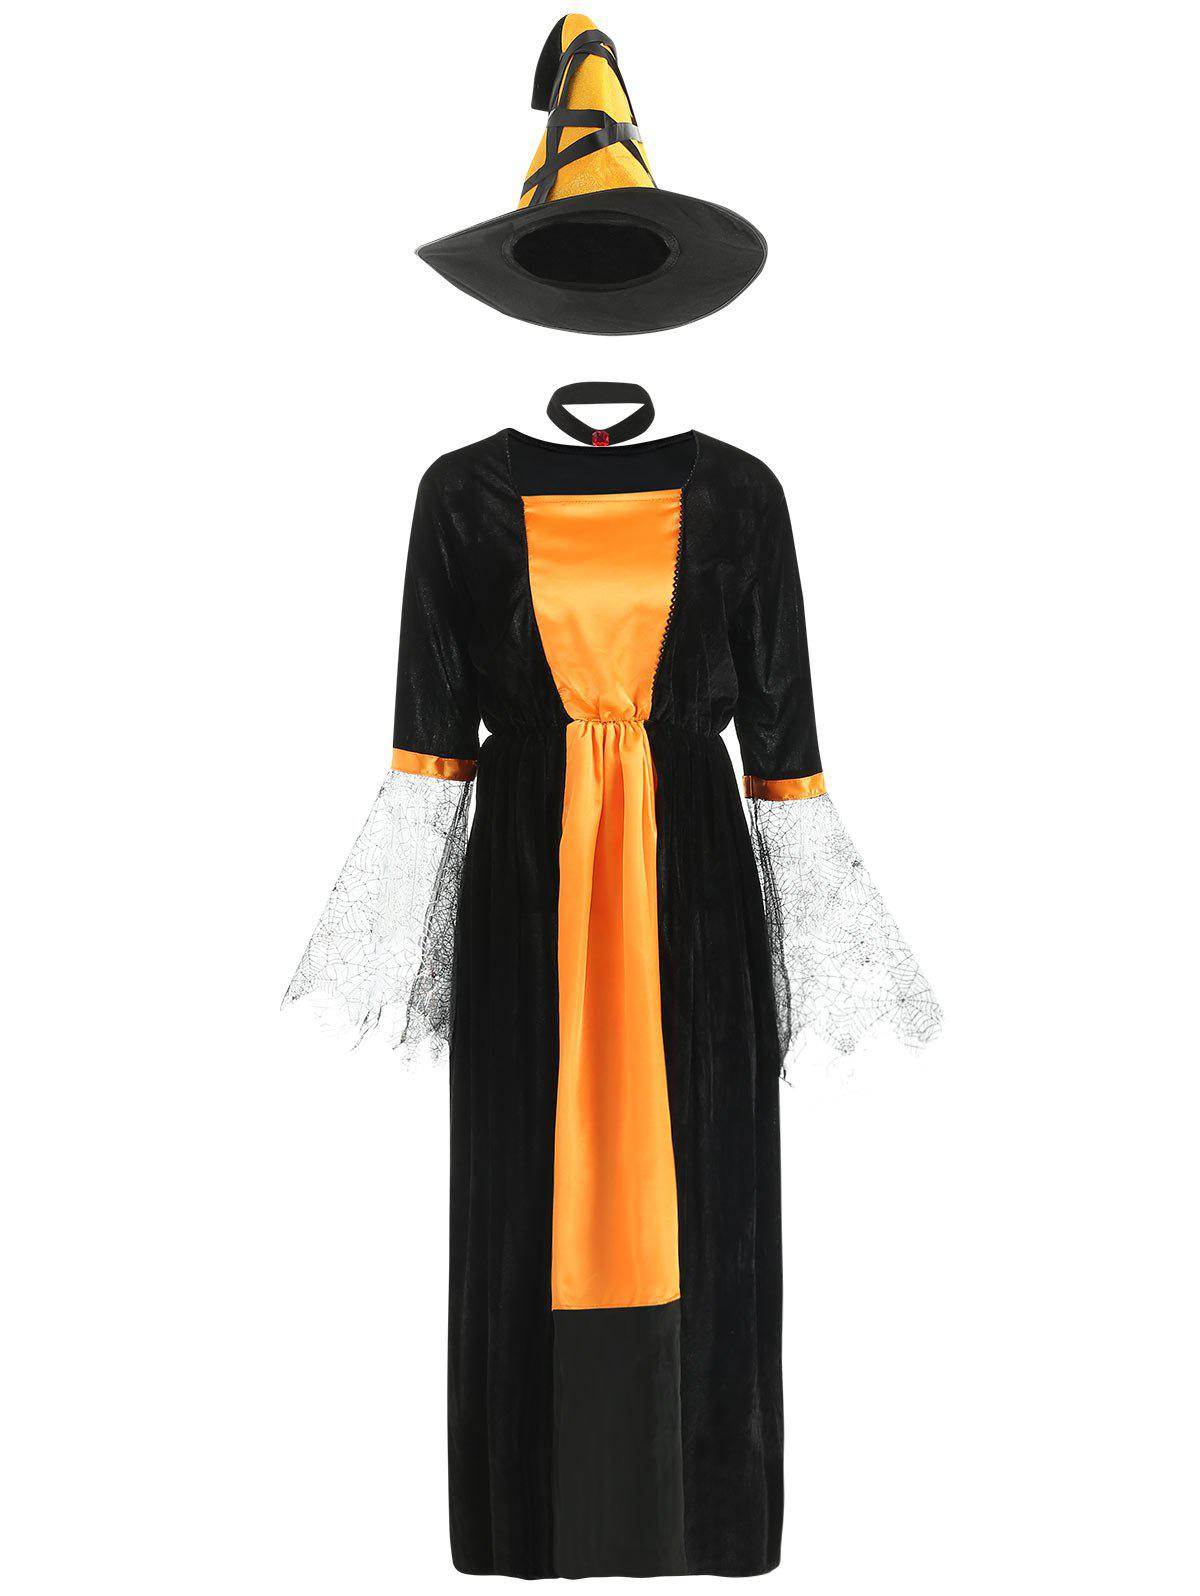 Latest Halloween Contrast Velvet Dress with Witch Hat